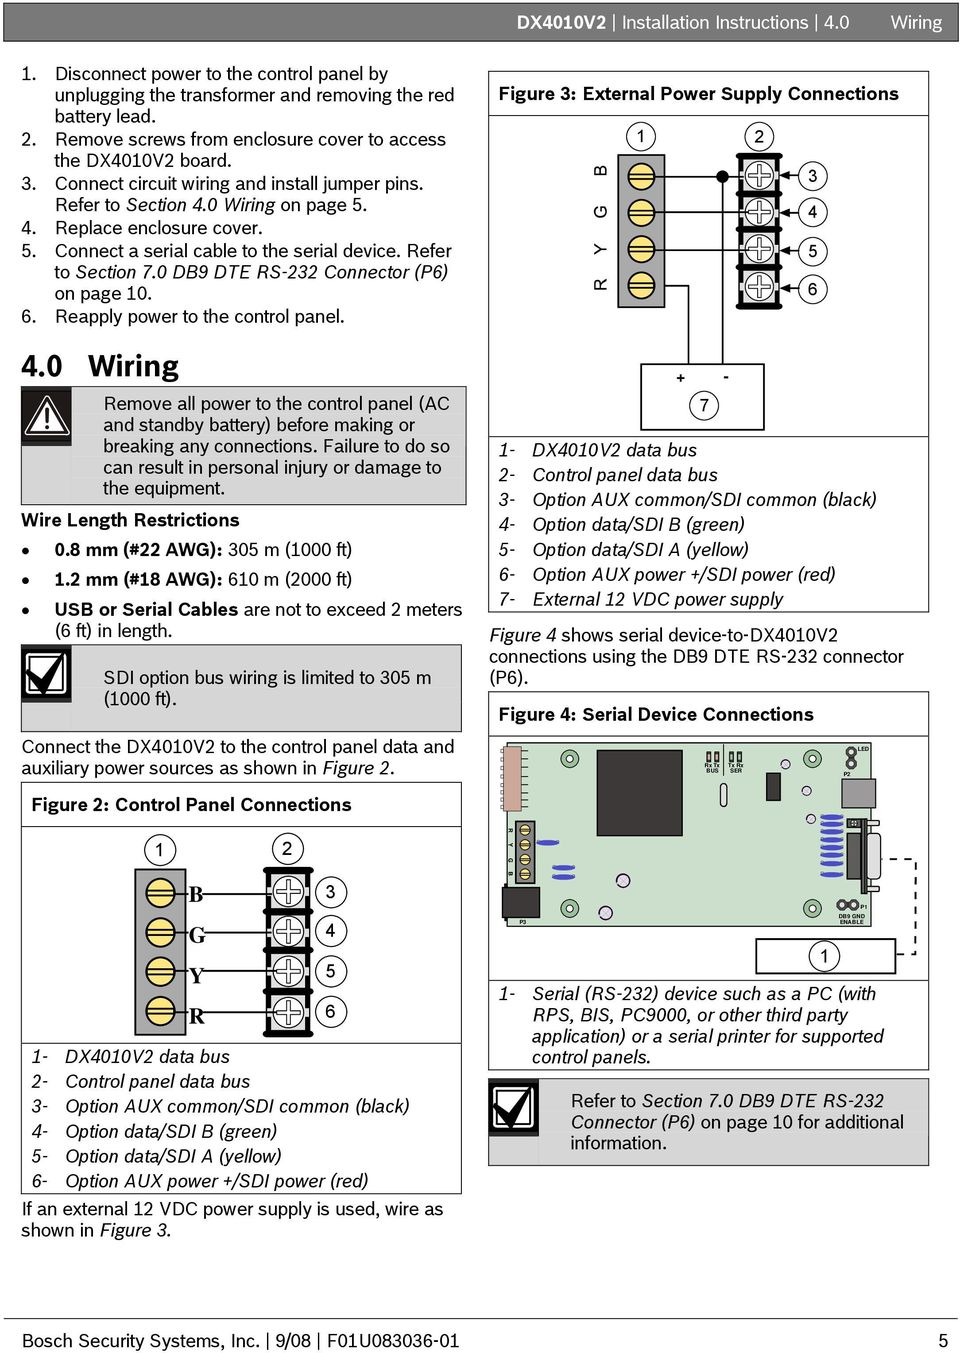 Dx4010v2 Installation Instructions Rs 232 Usb Serial Interface Diagram Together With Port Pinout On 9 Pin Rs232 Cable Refer To Section 70 Db9 Dte Connector P6 Page 10